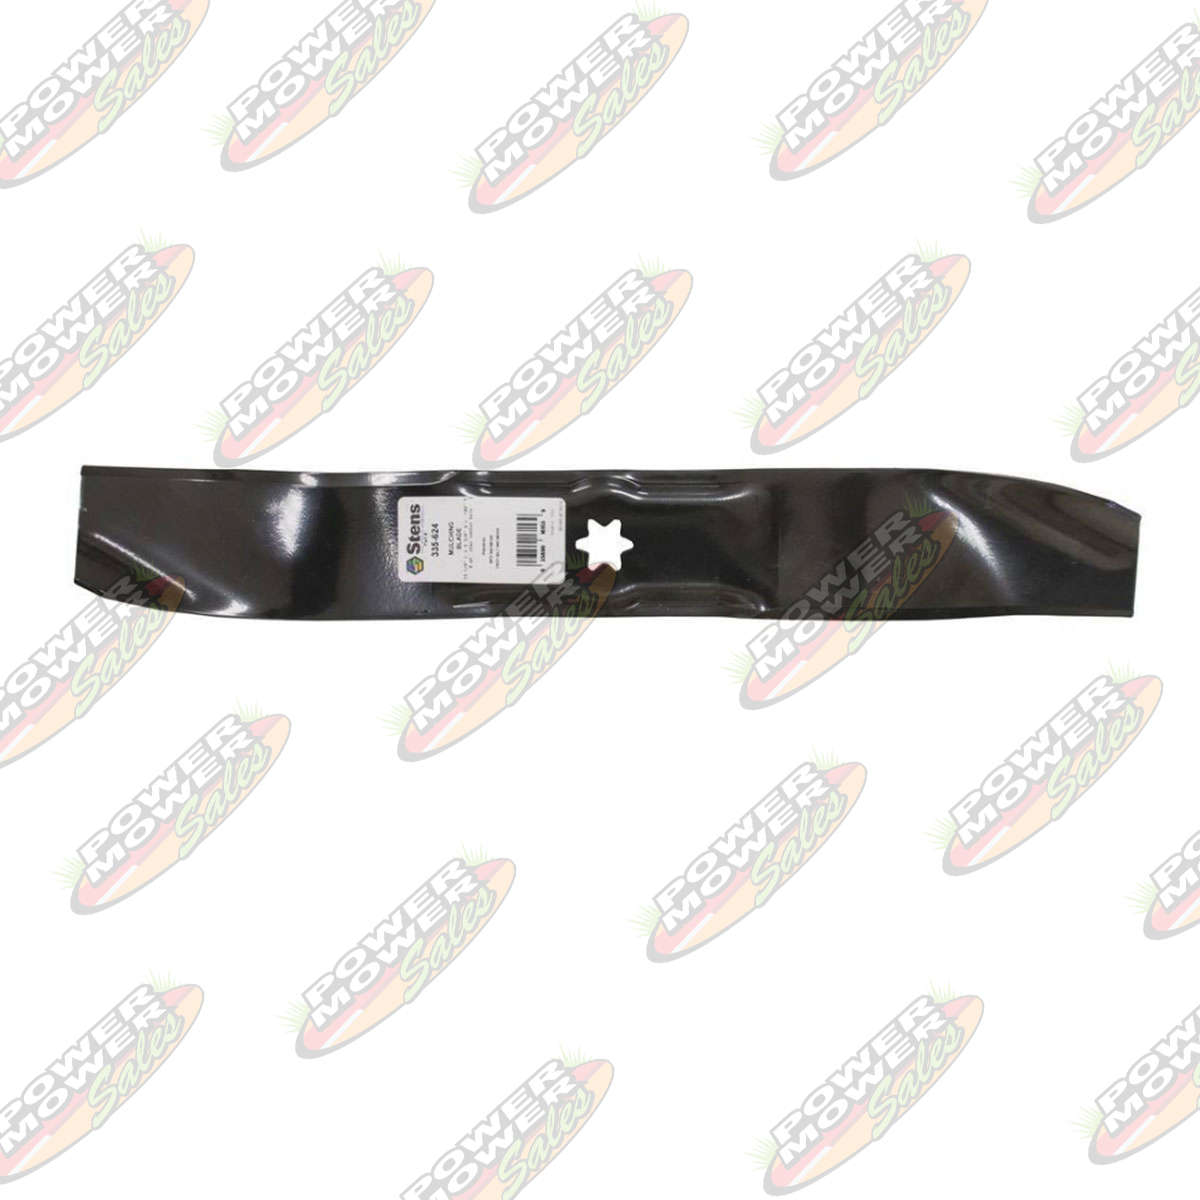 Stens Mulching Blade Replaces MTD 942-0610A 335-624